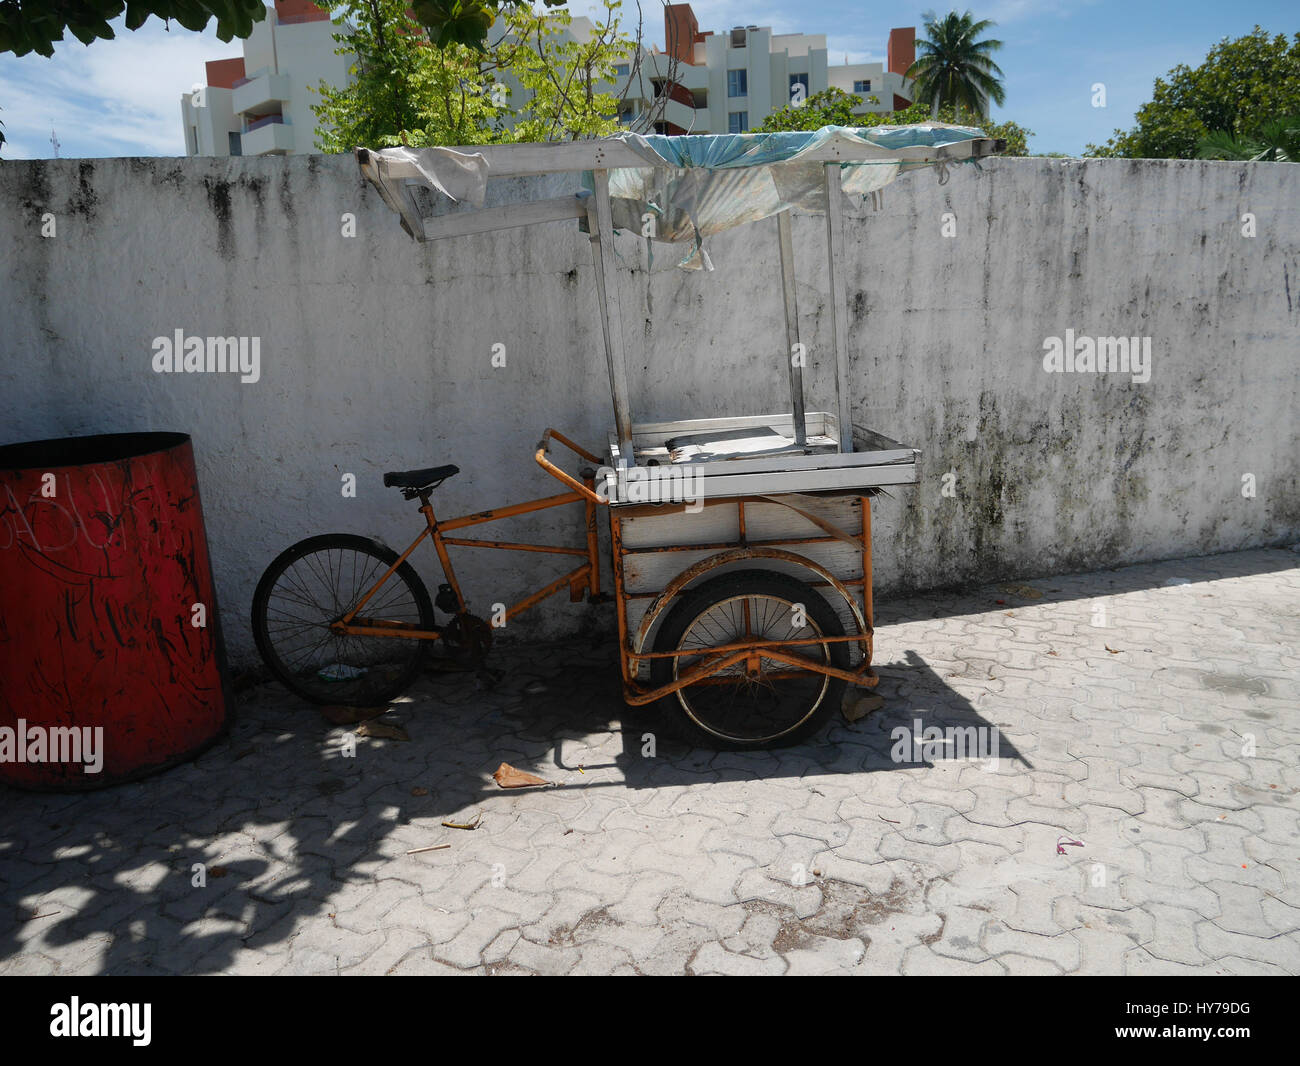 Three Wheeled Bicycle Made For Market With A Box And Storage For Ice Cream  And Small